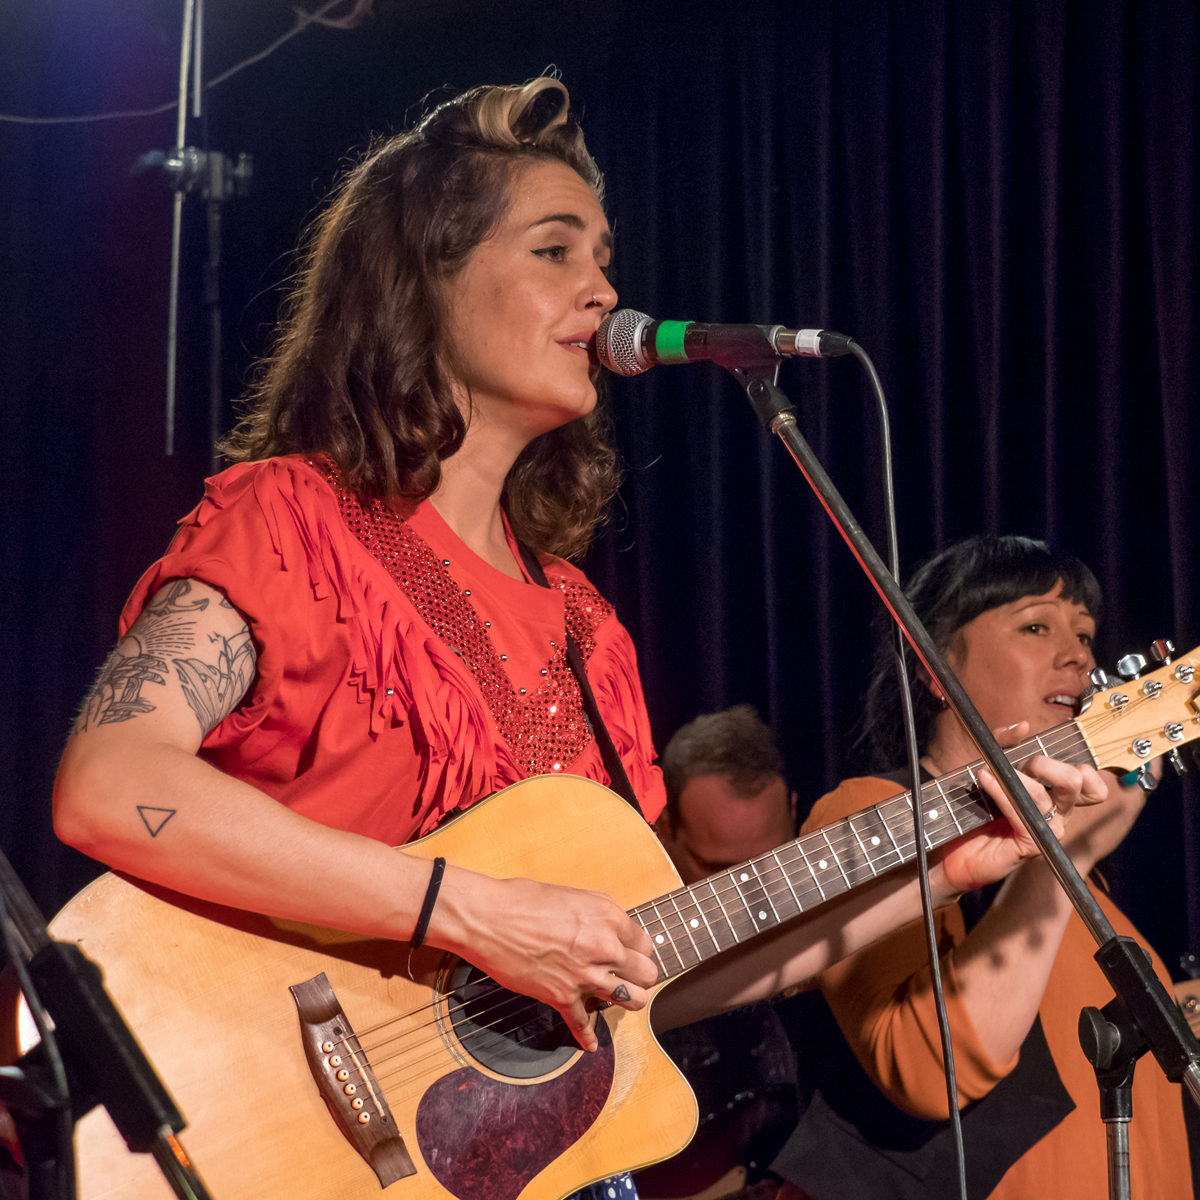 Delilah-Rose-and-the-Gunslingers---Capitol---1017---Linda-Dunjey-Photography--(23).png